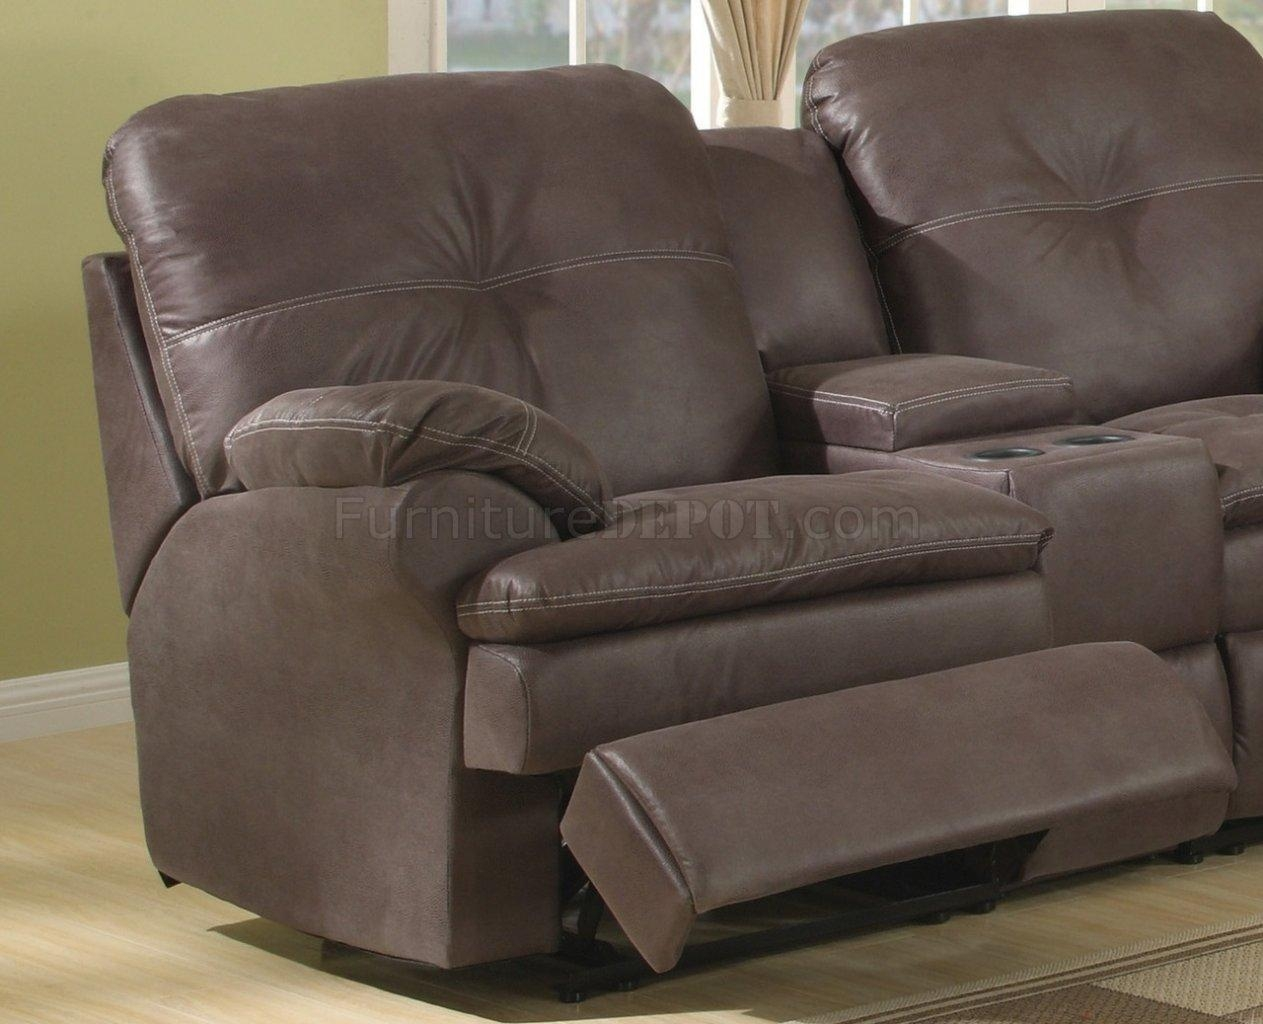 Upgraded Fabric Modern Reclining Sectional Sofa within Modern Reclining Sectional